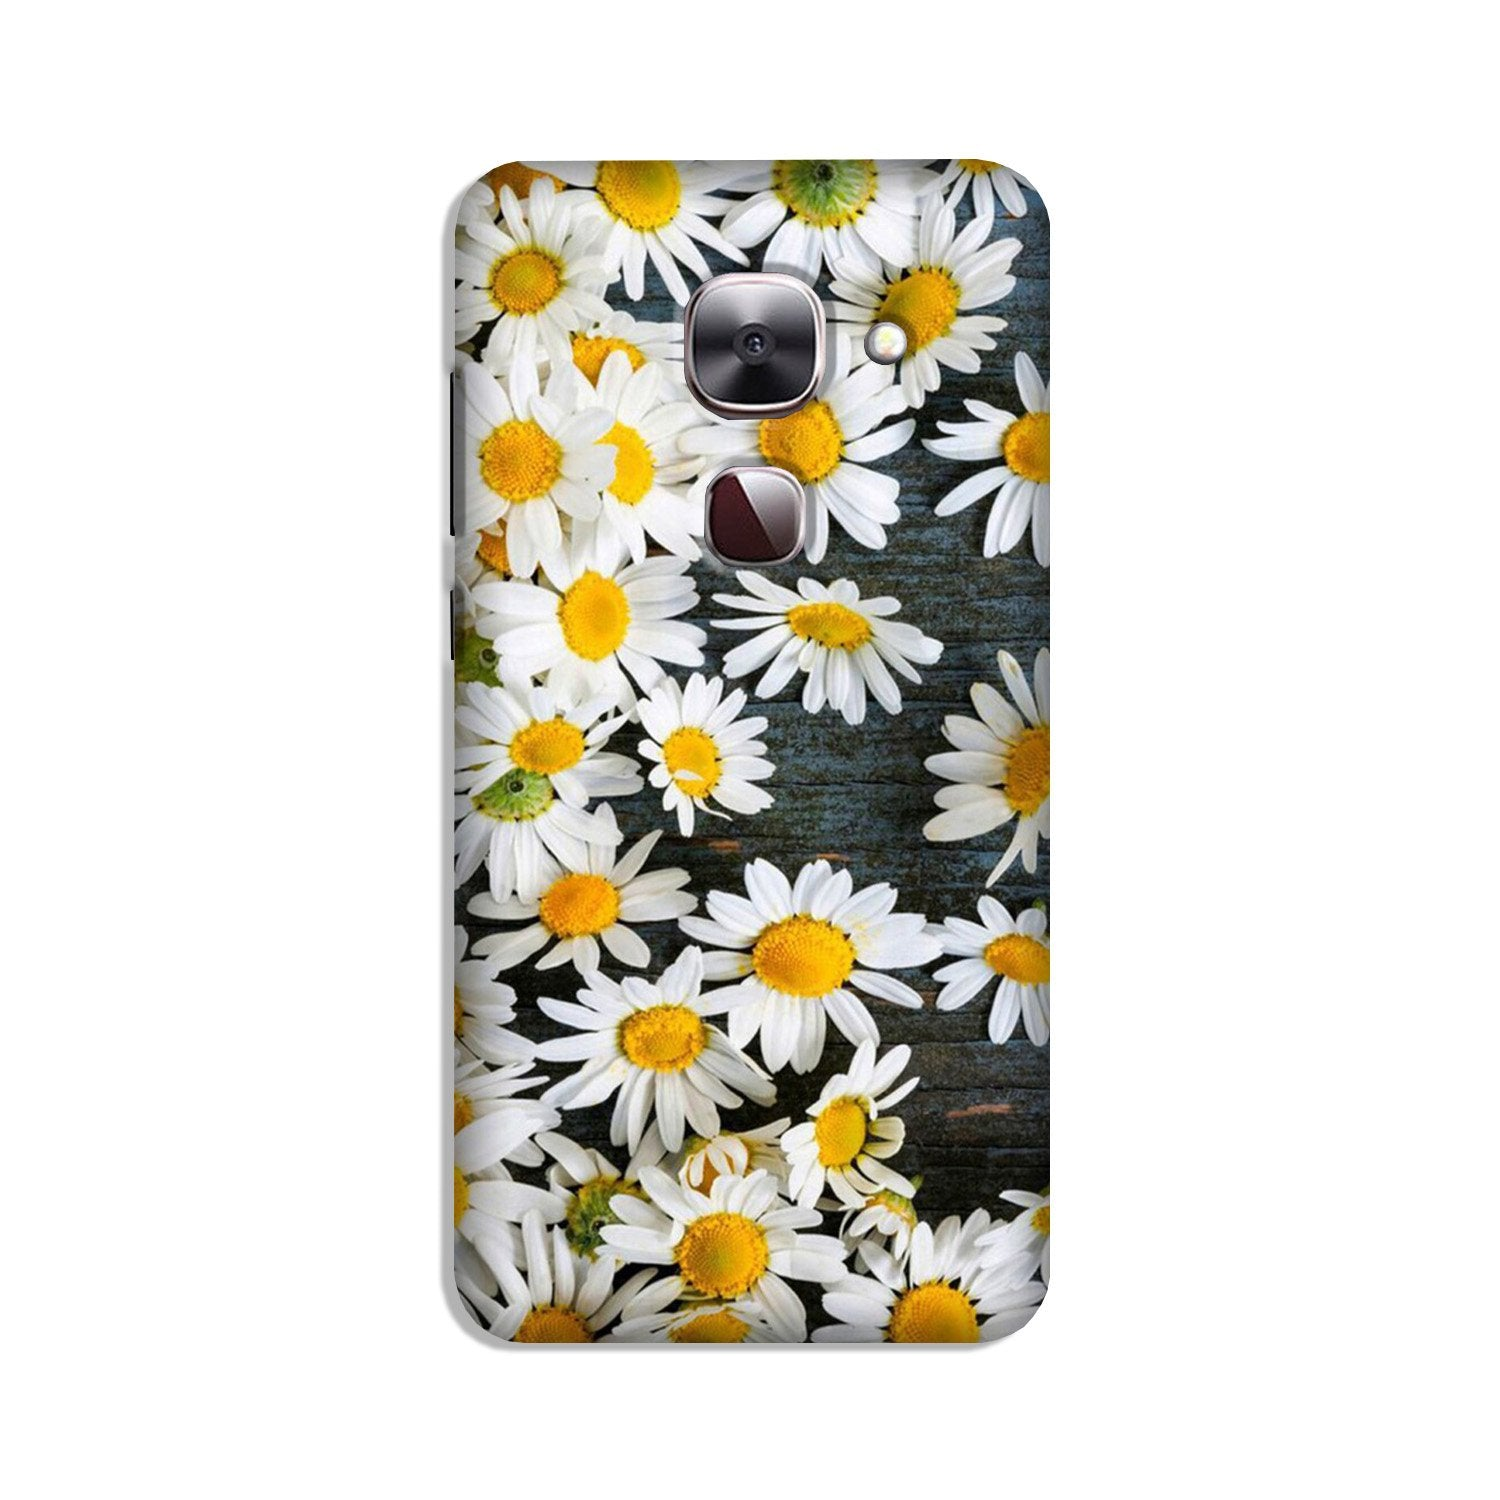 White flowers Case for LeEco le 2s